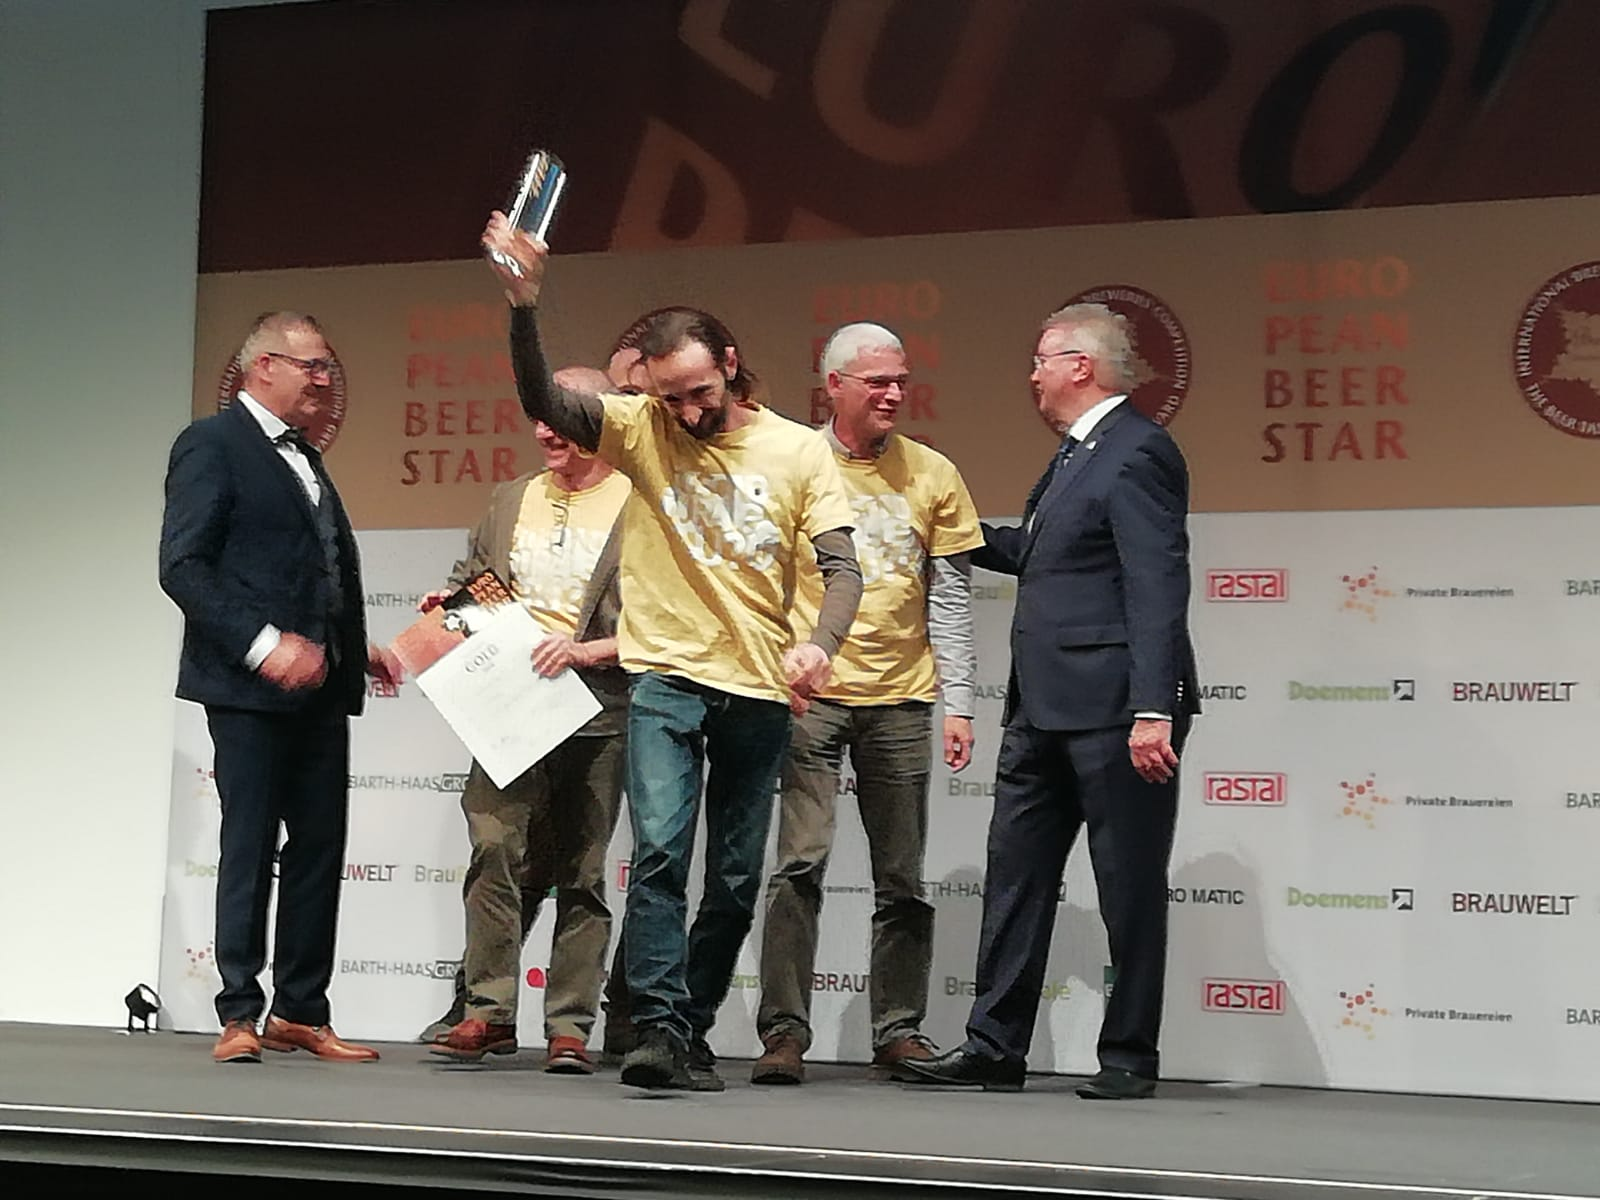 Simphonia del Birrificio Rurale premiata all'European Beer Star!